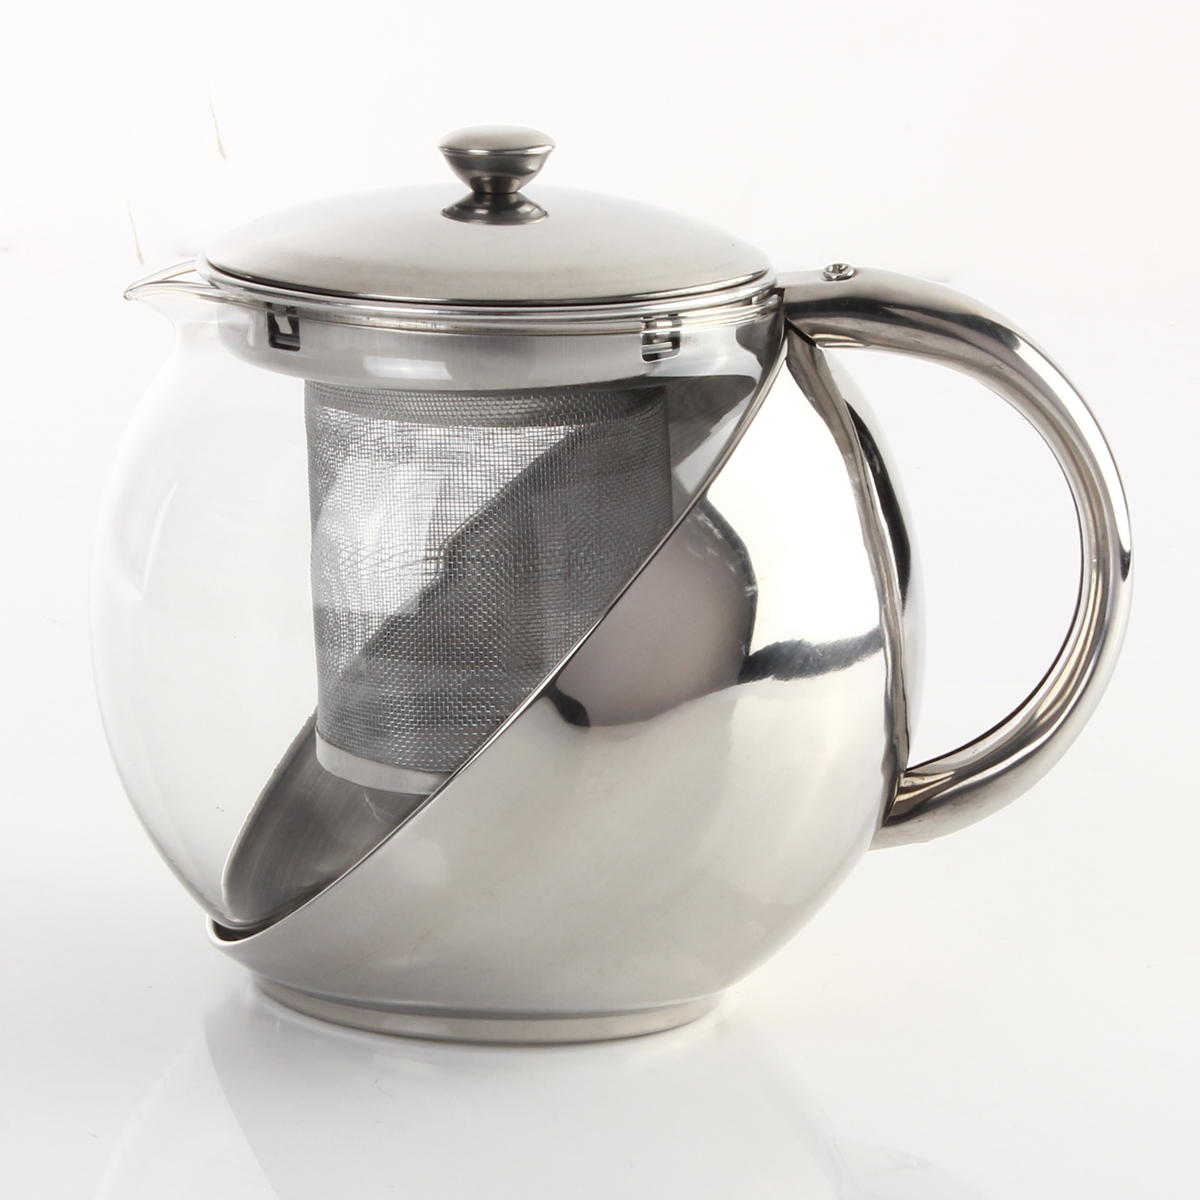 Ml stainless steel glass teapot with tea leaf strainer